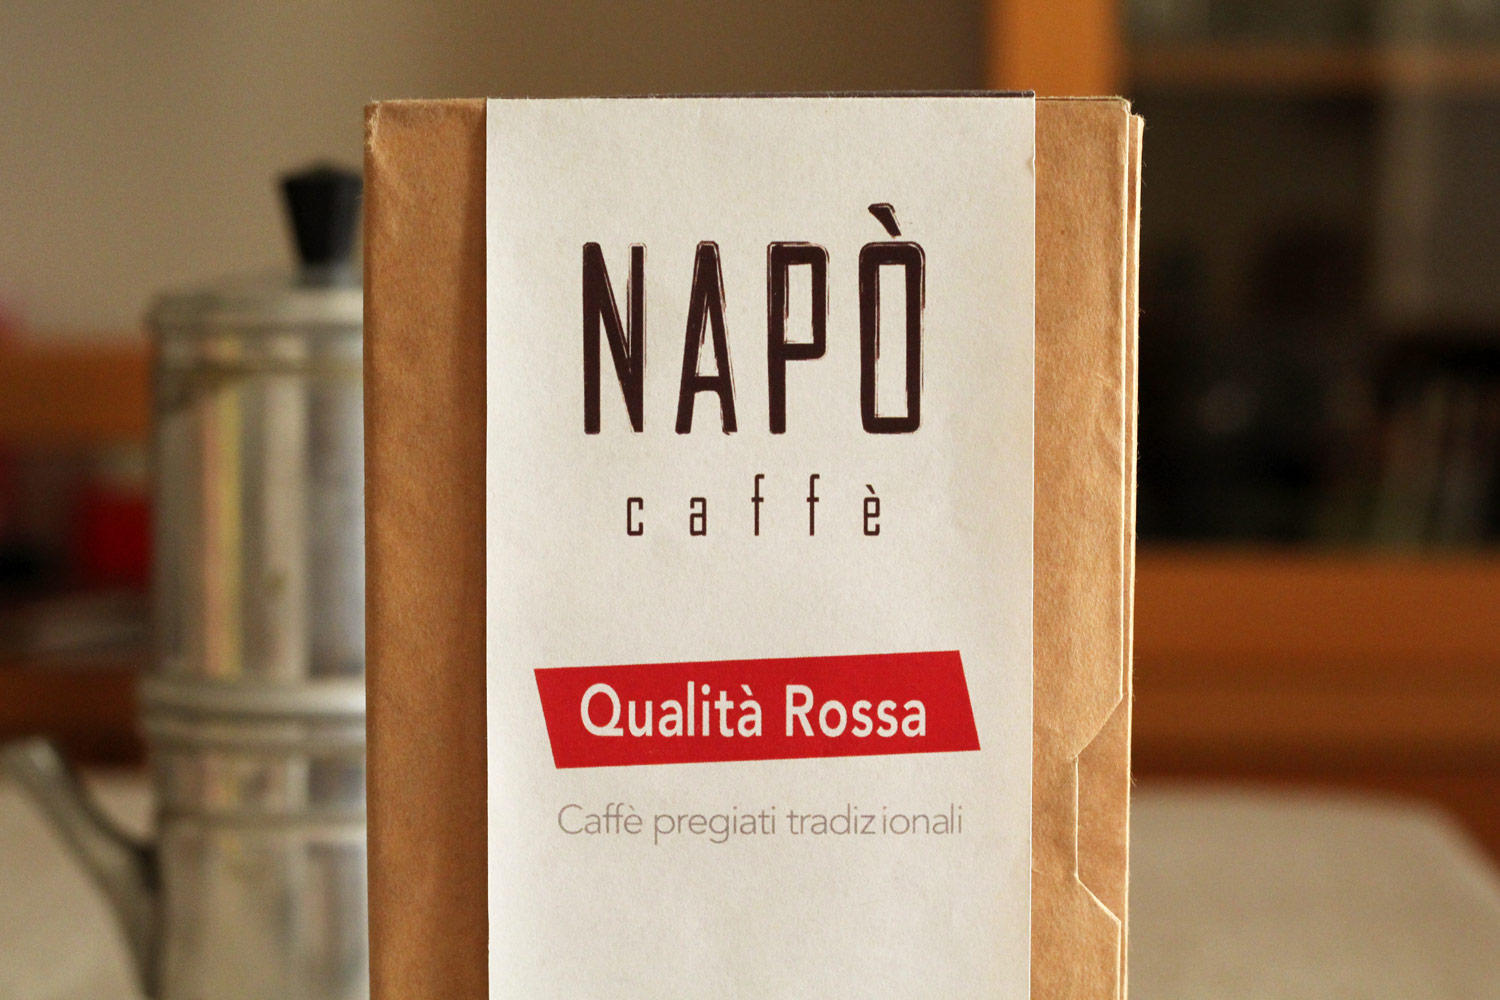 Napò Caffè - Branding and Packaging